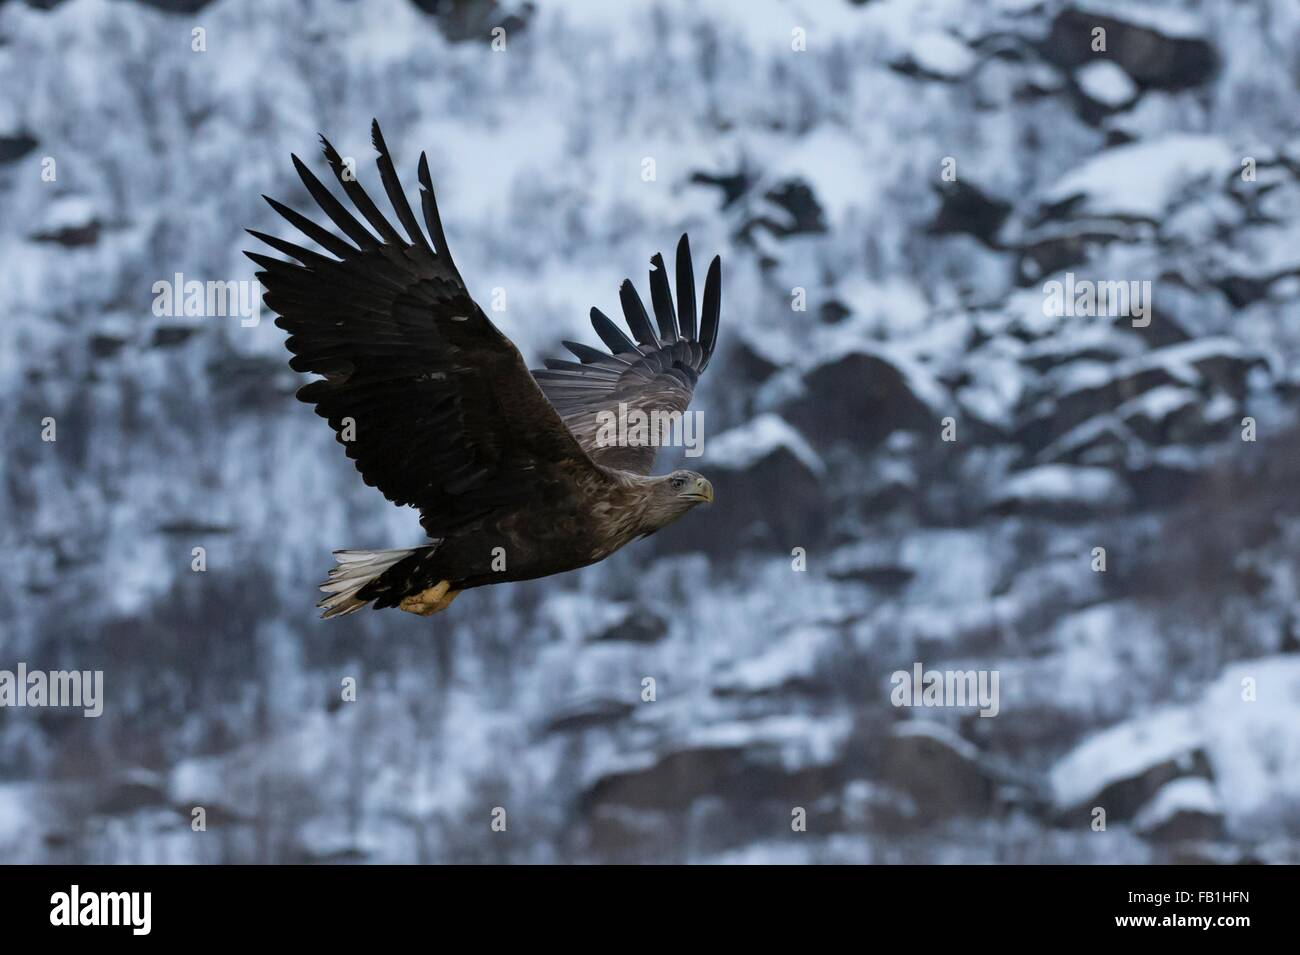 White tailed eagle in flight, Lofoten and Vesteralen Islands, Norway Stock Photo